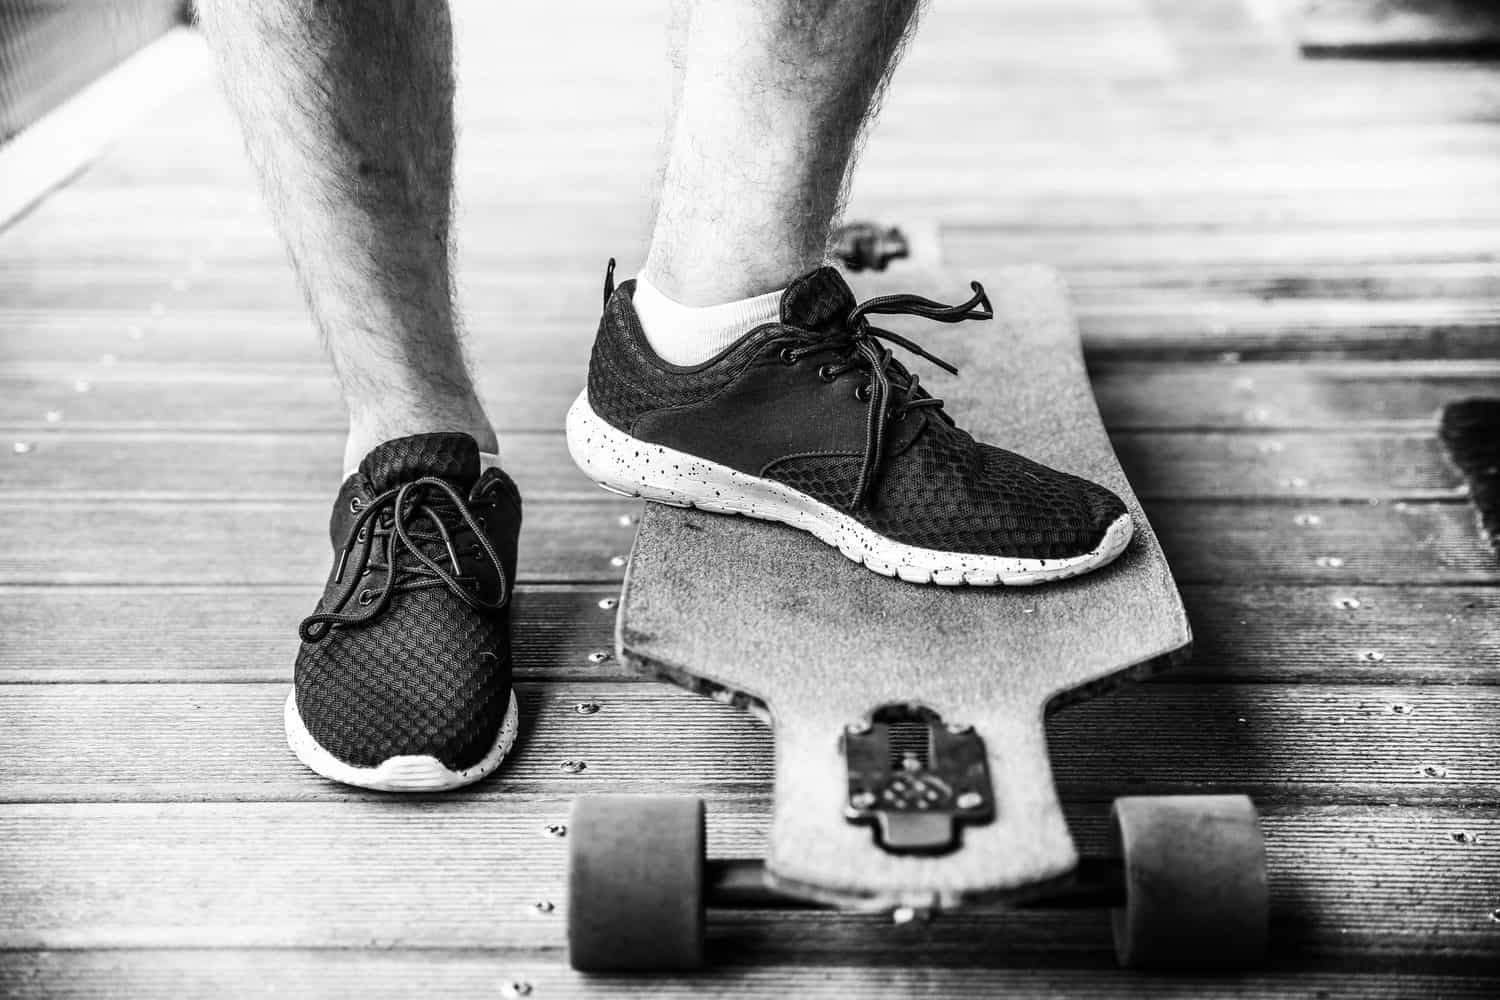 Electric Skateboard Speed Wobble: Causes and how to avoid it